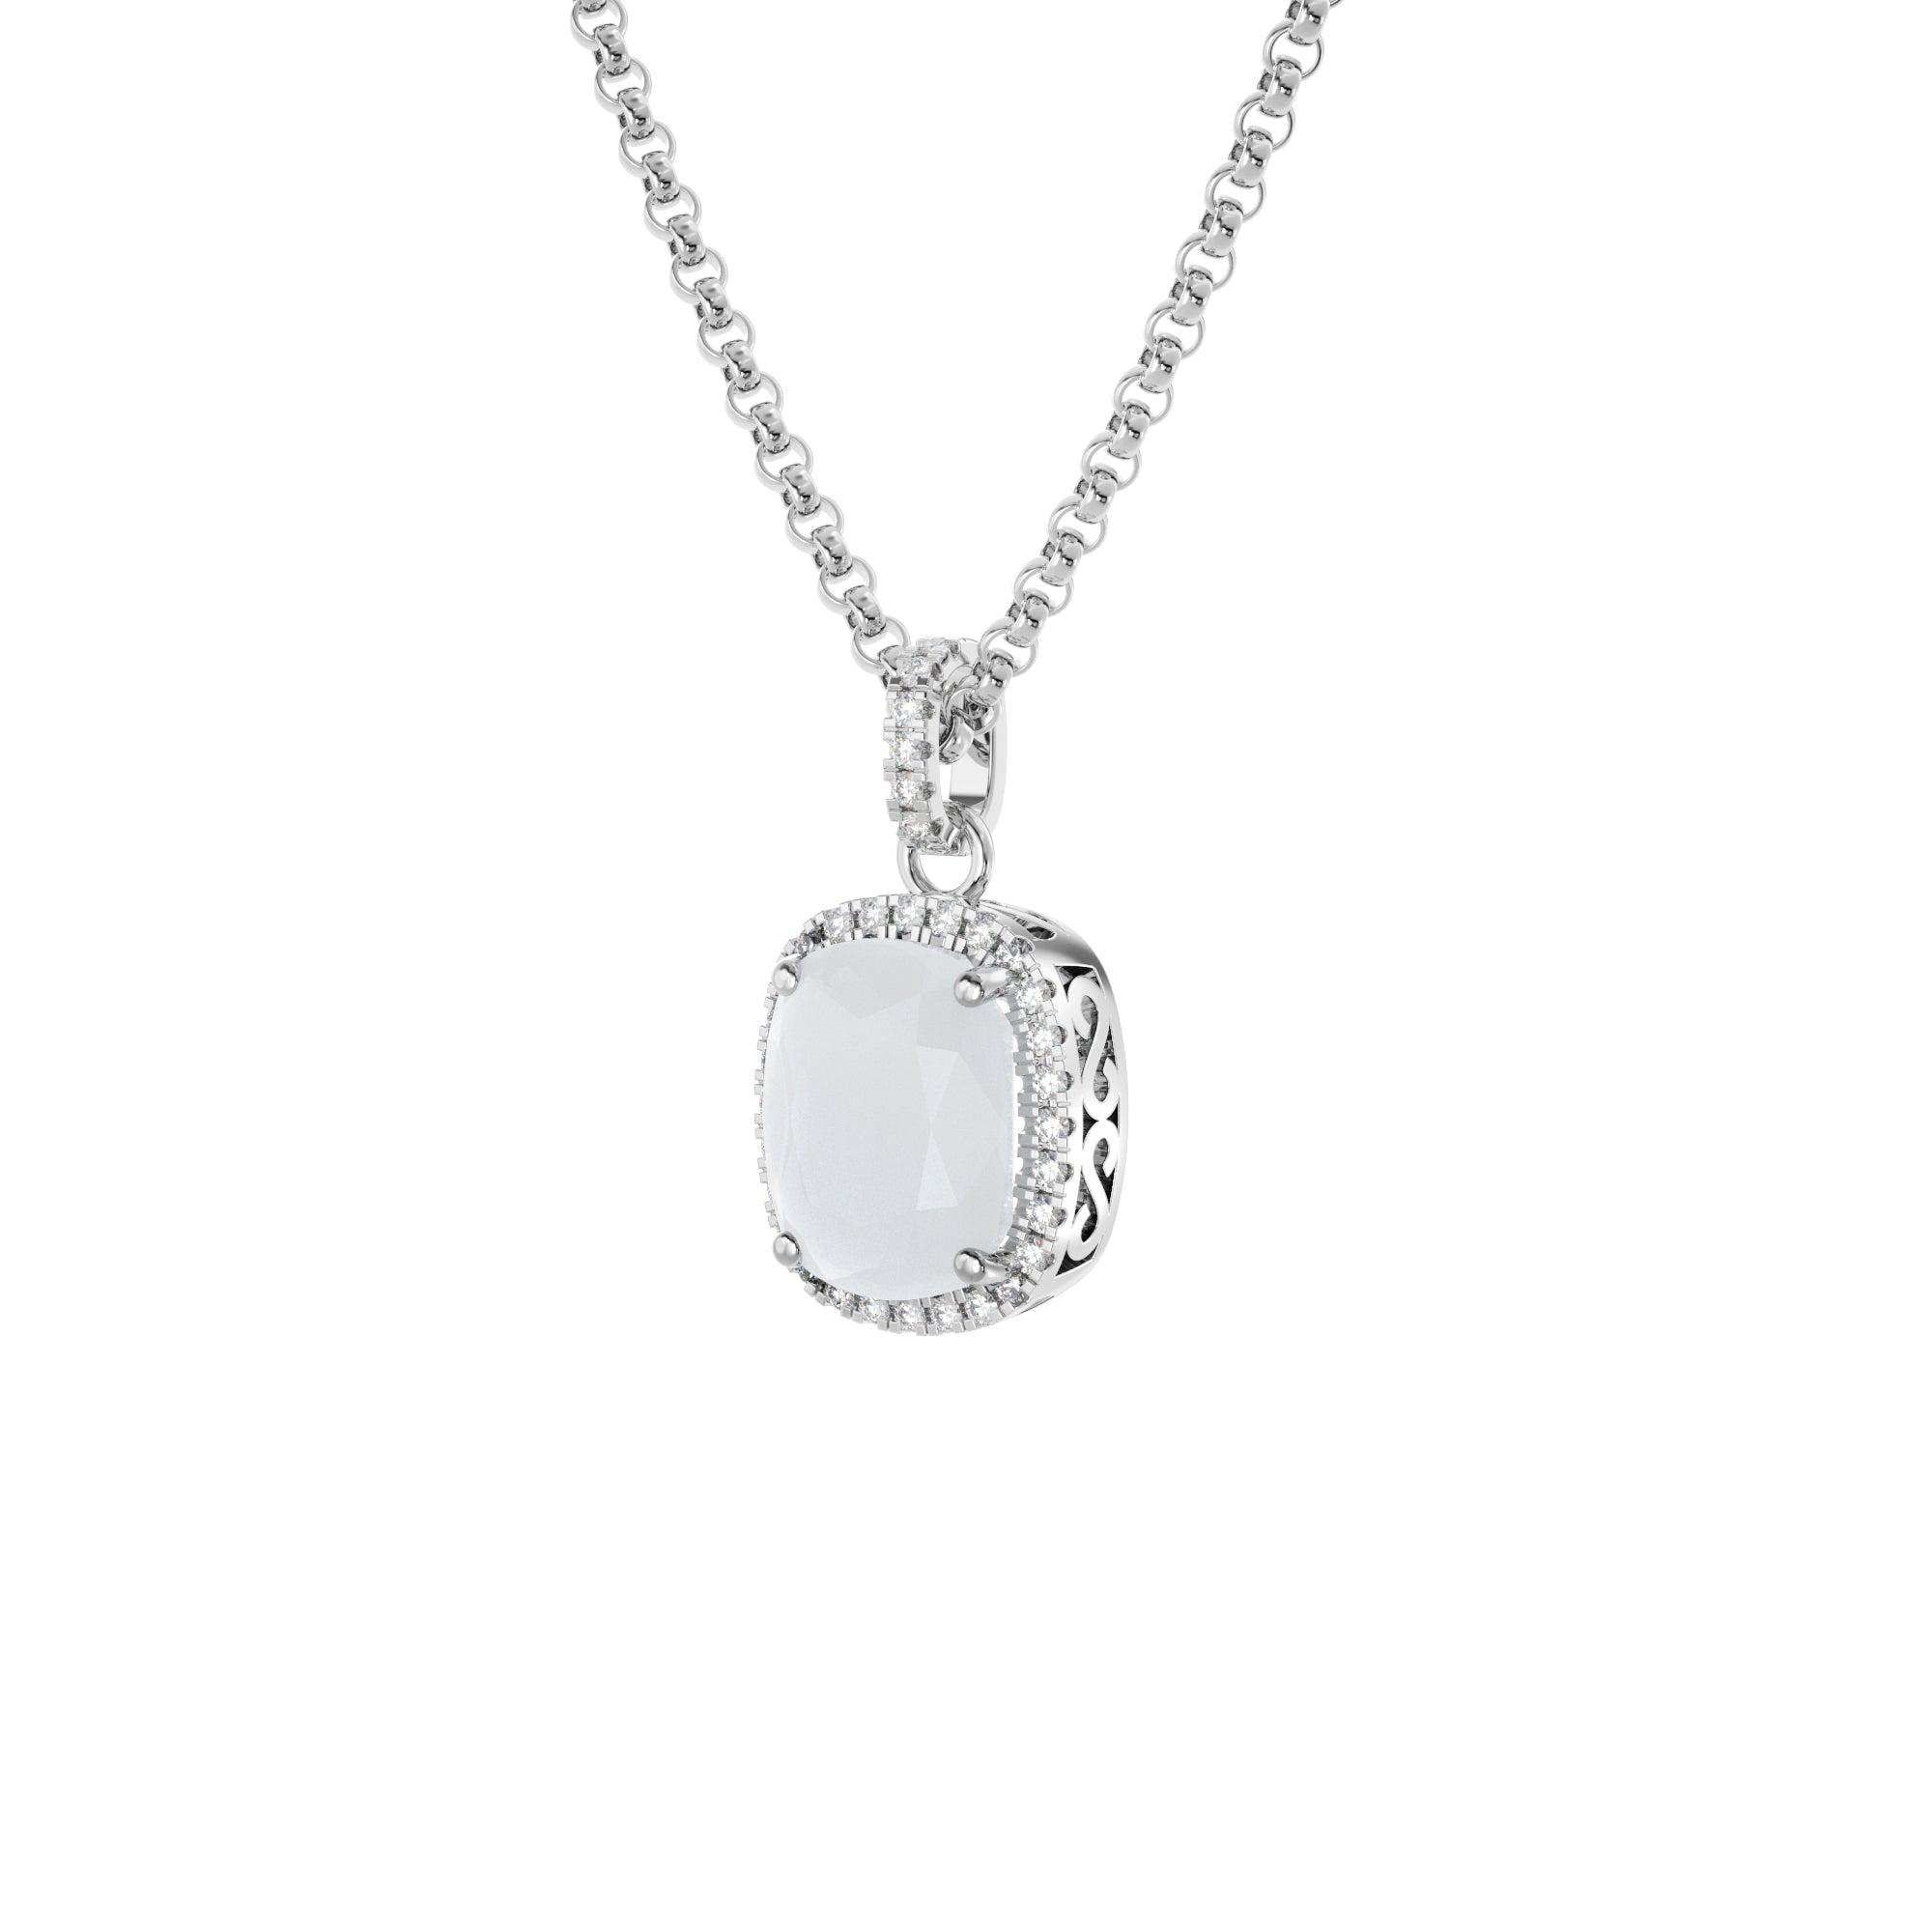 925 Silver Luxe Series Necklace - Laria (Moonstone)